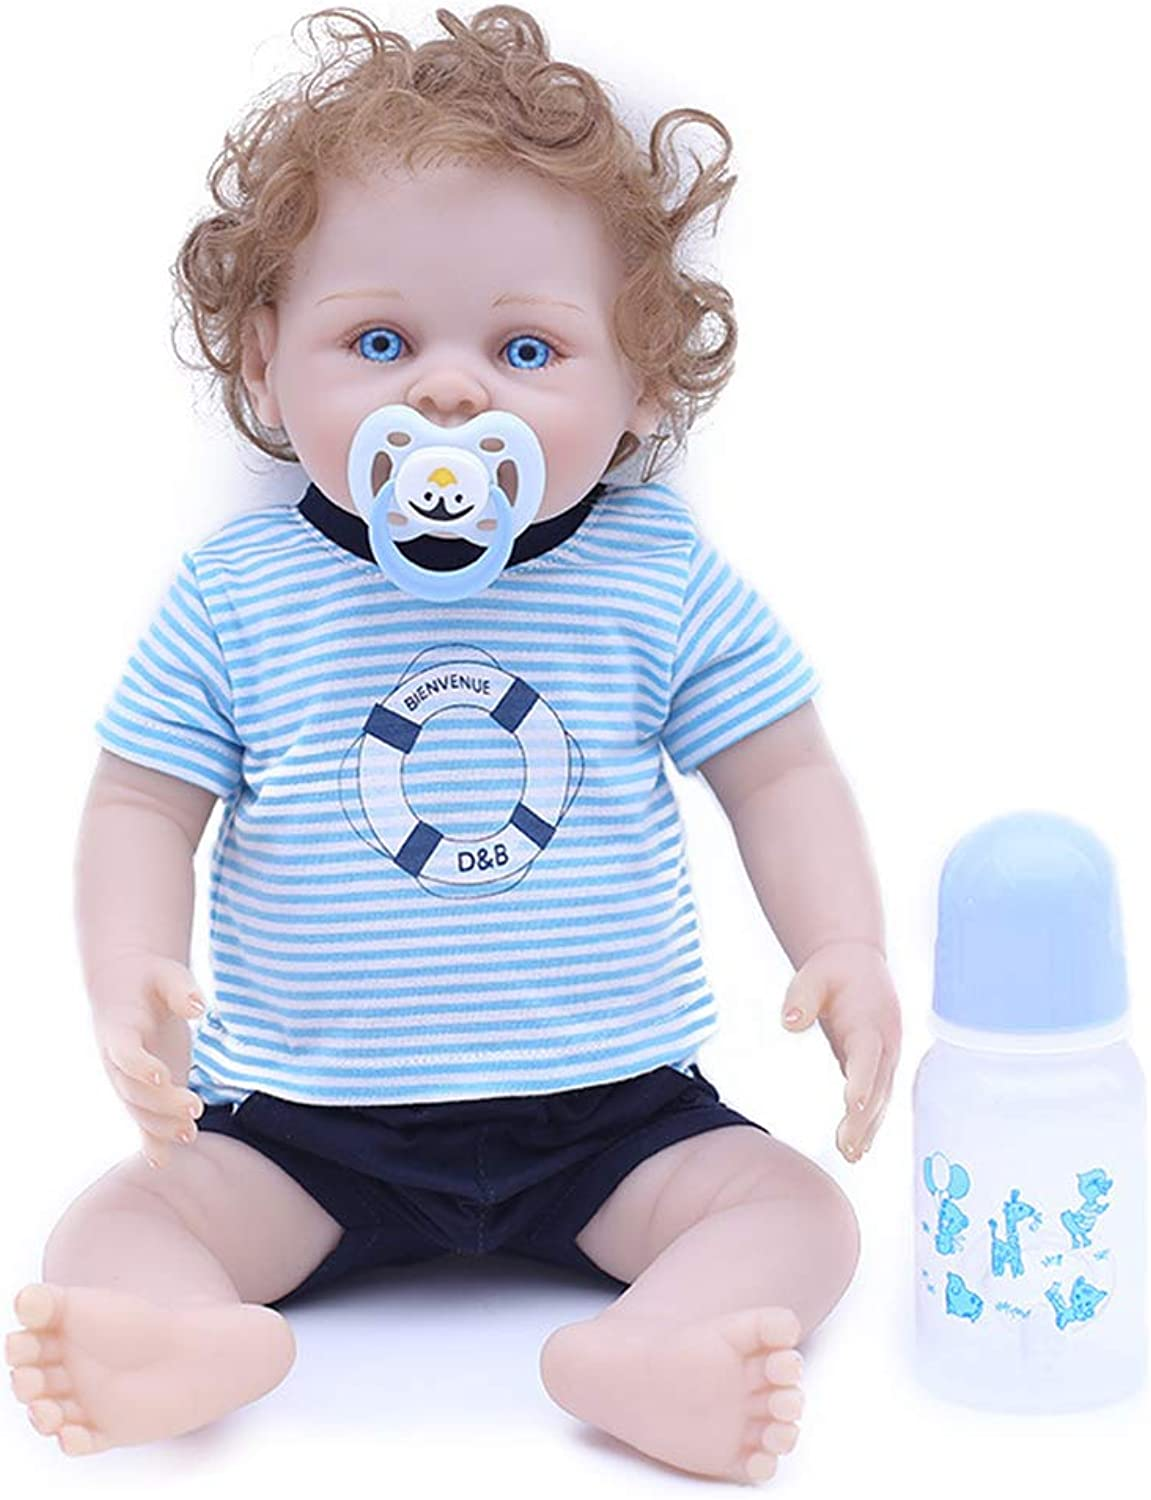 JUNMAO 18 Inch Lifelike Reborn Baby Dolls Boy Handmade Soft Silicone Realistic Newborn Baby Doll with Soccer Clothes & Accessories, Gifts and Playmates for Kids Age 3+ (bluee, 18'')